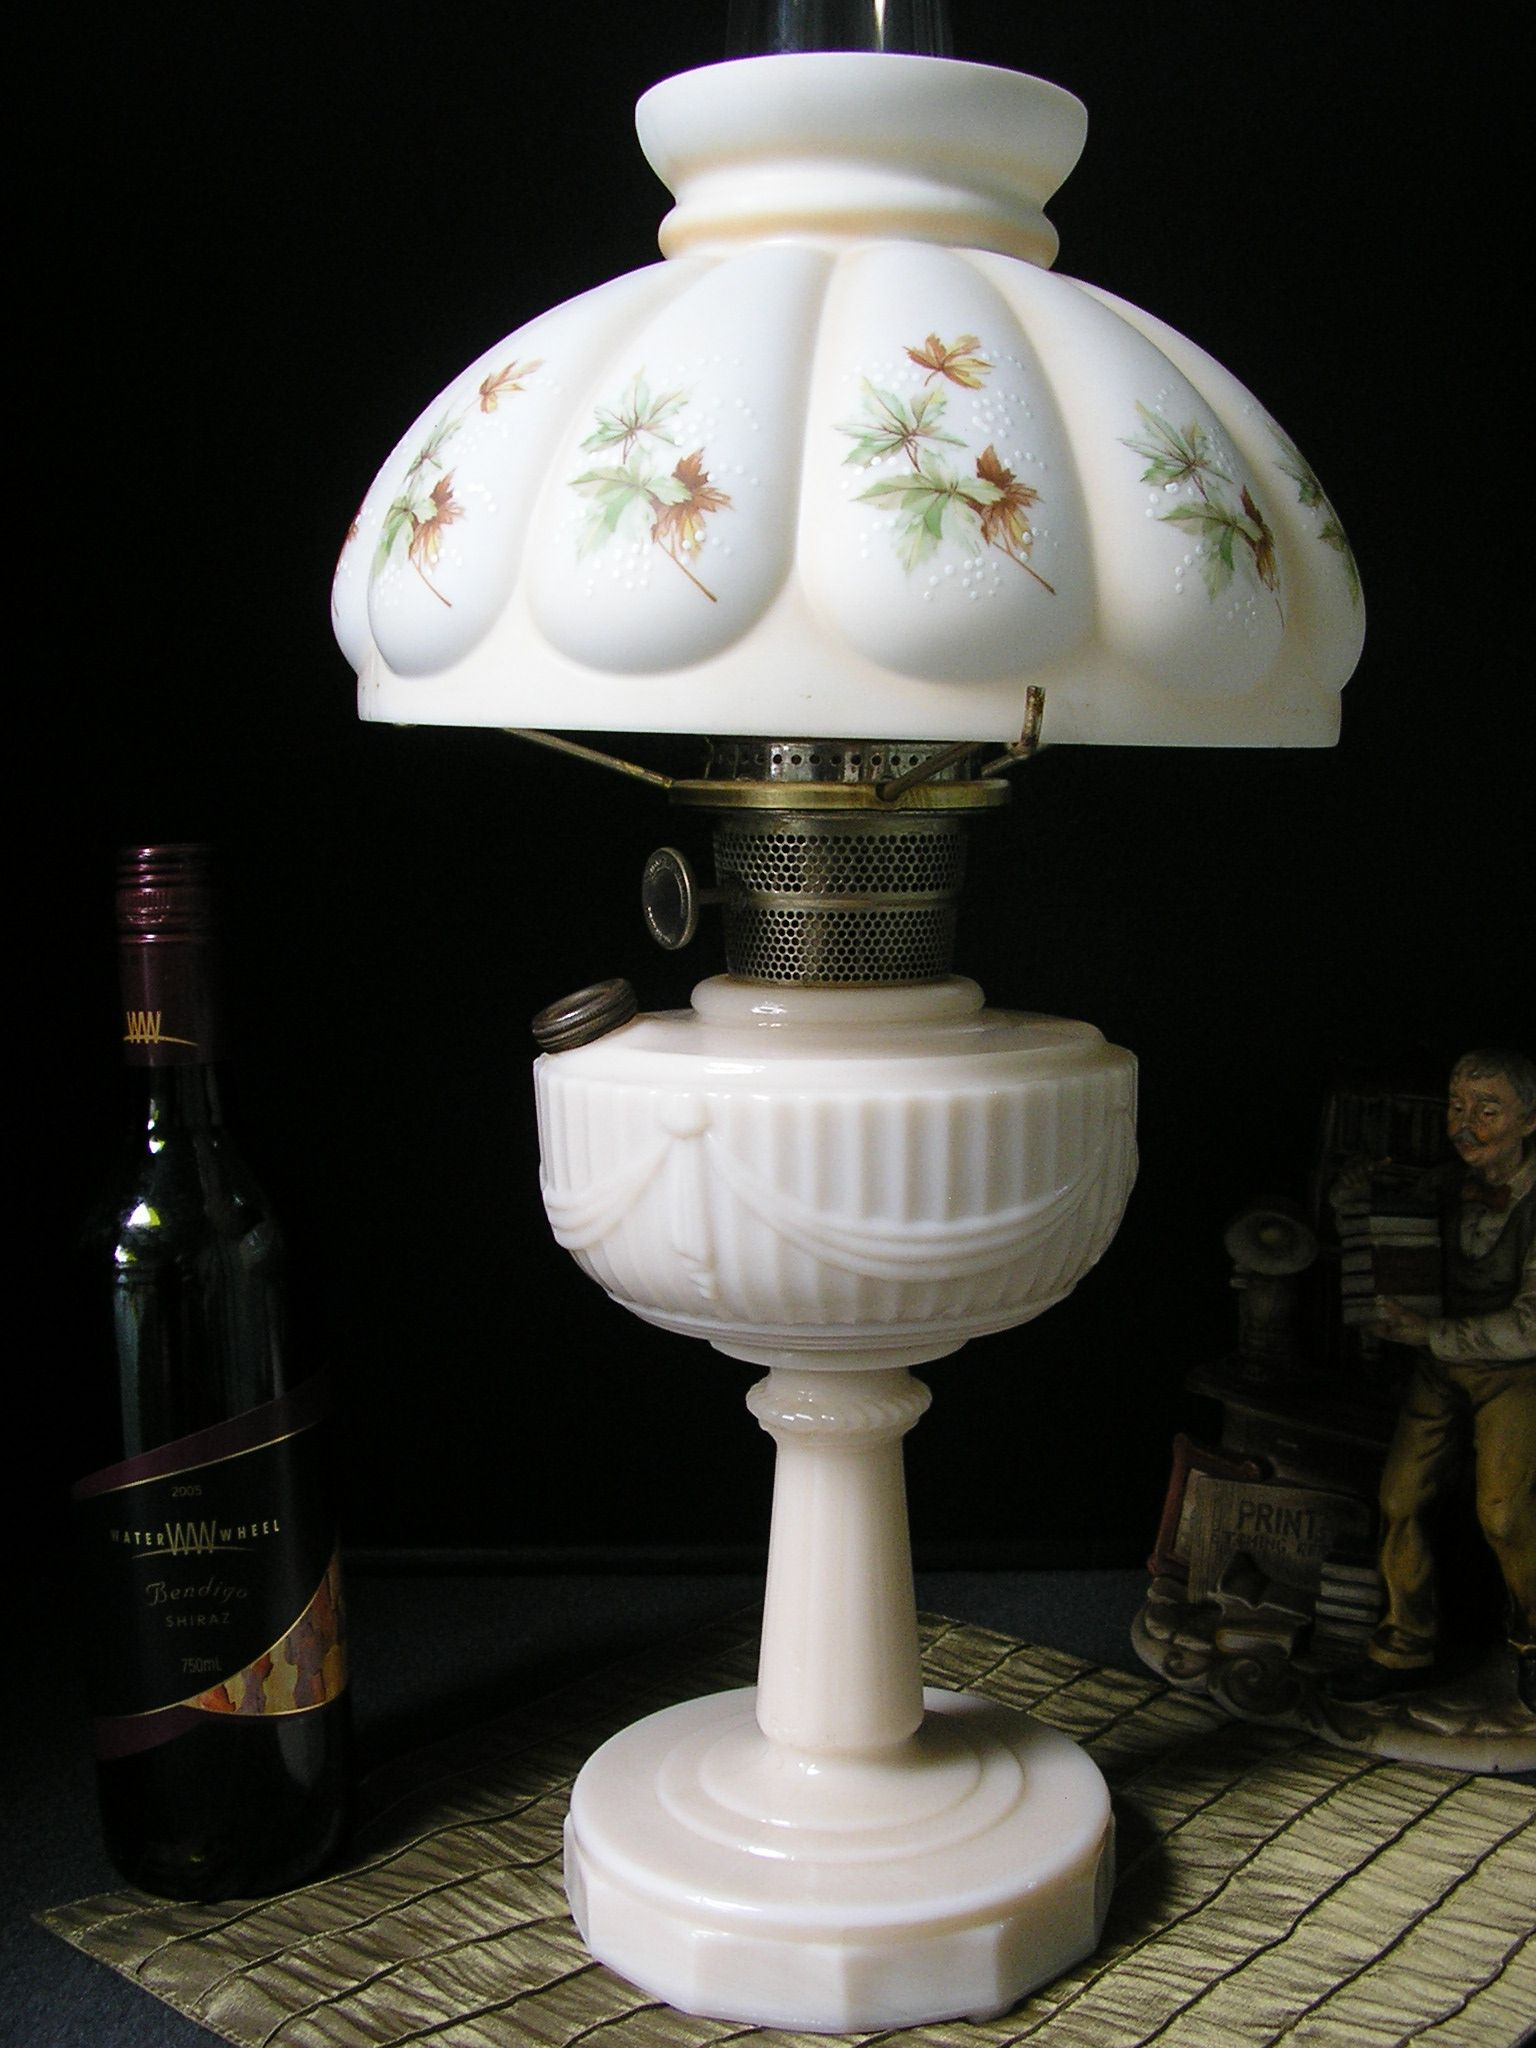 Aladdin alacite tall lincoln drape mantle lamp with transfer aladdin alacite tall lincoln drape mantle lamp with transfer decorated melon style shade geotapseo Image collections